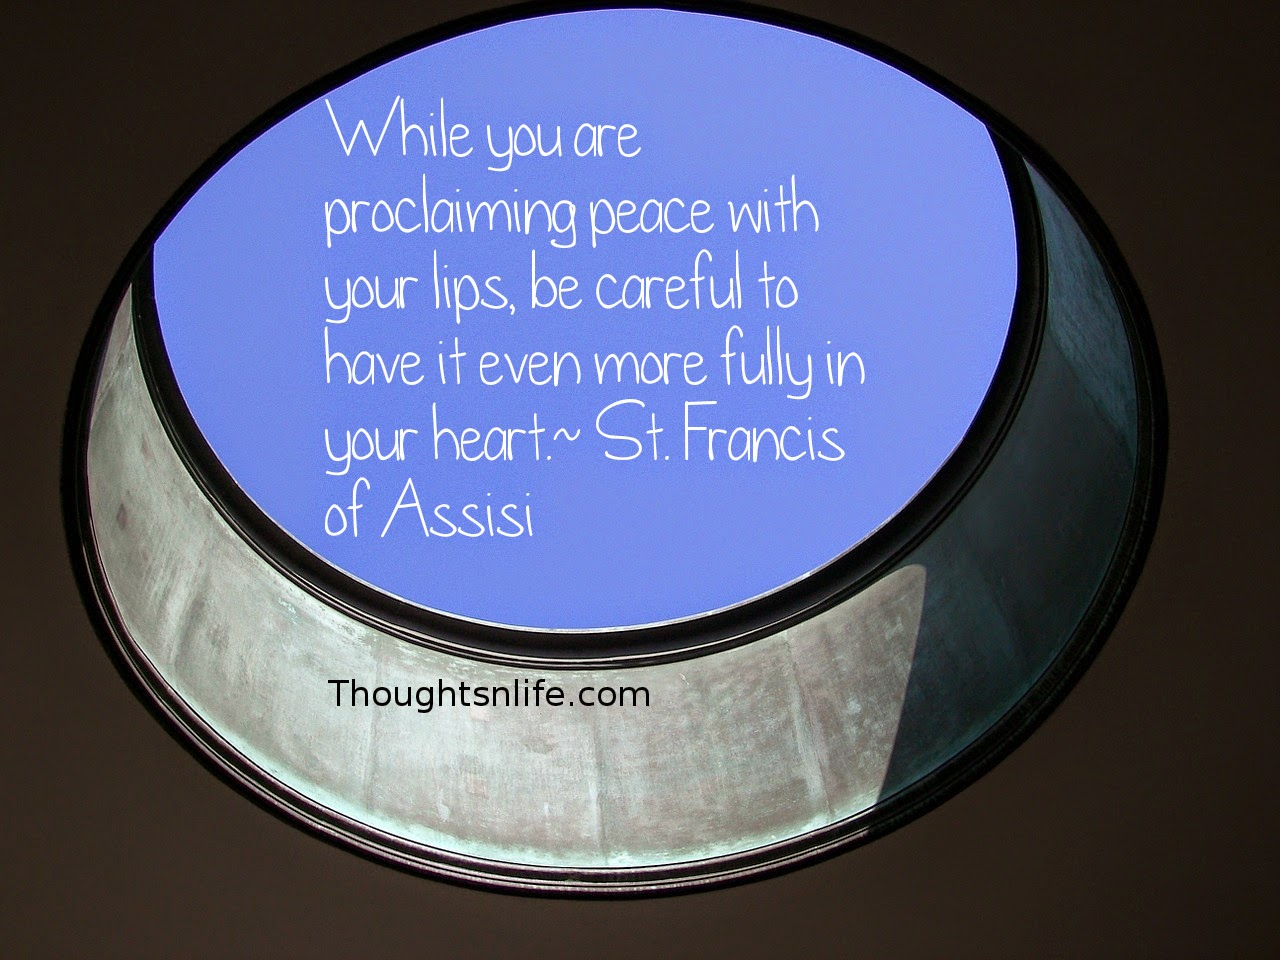 Thoughtsnlife.com : While you are proclaiming peace with your lips, be careful to have it even more fully in your heart. - St. Francis of Assisi